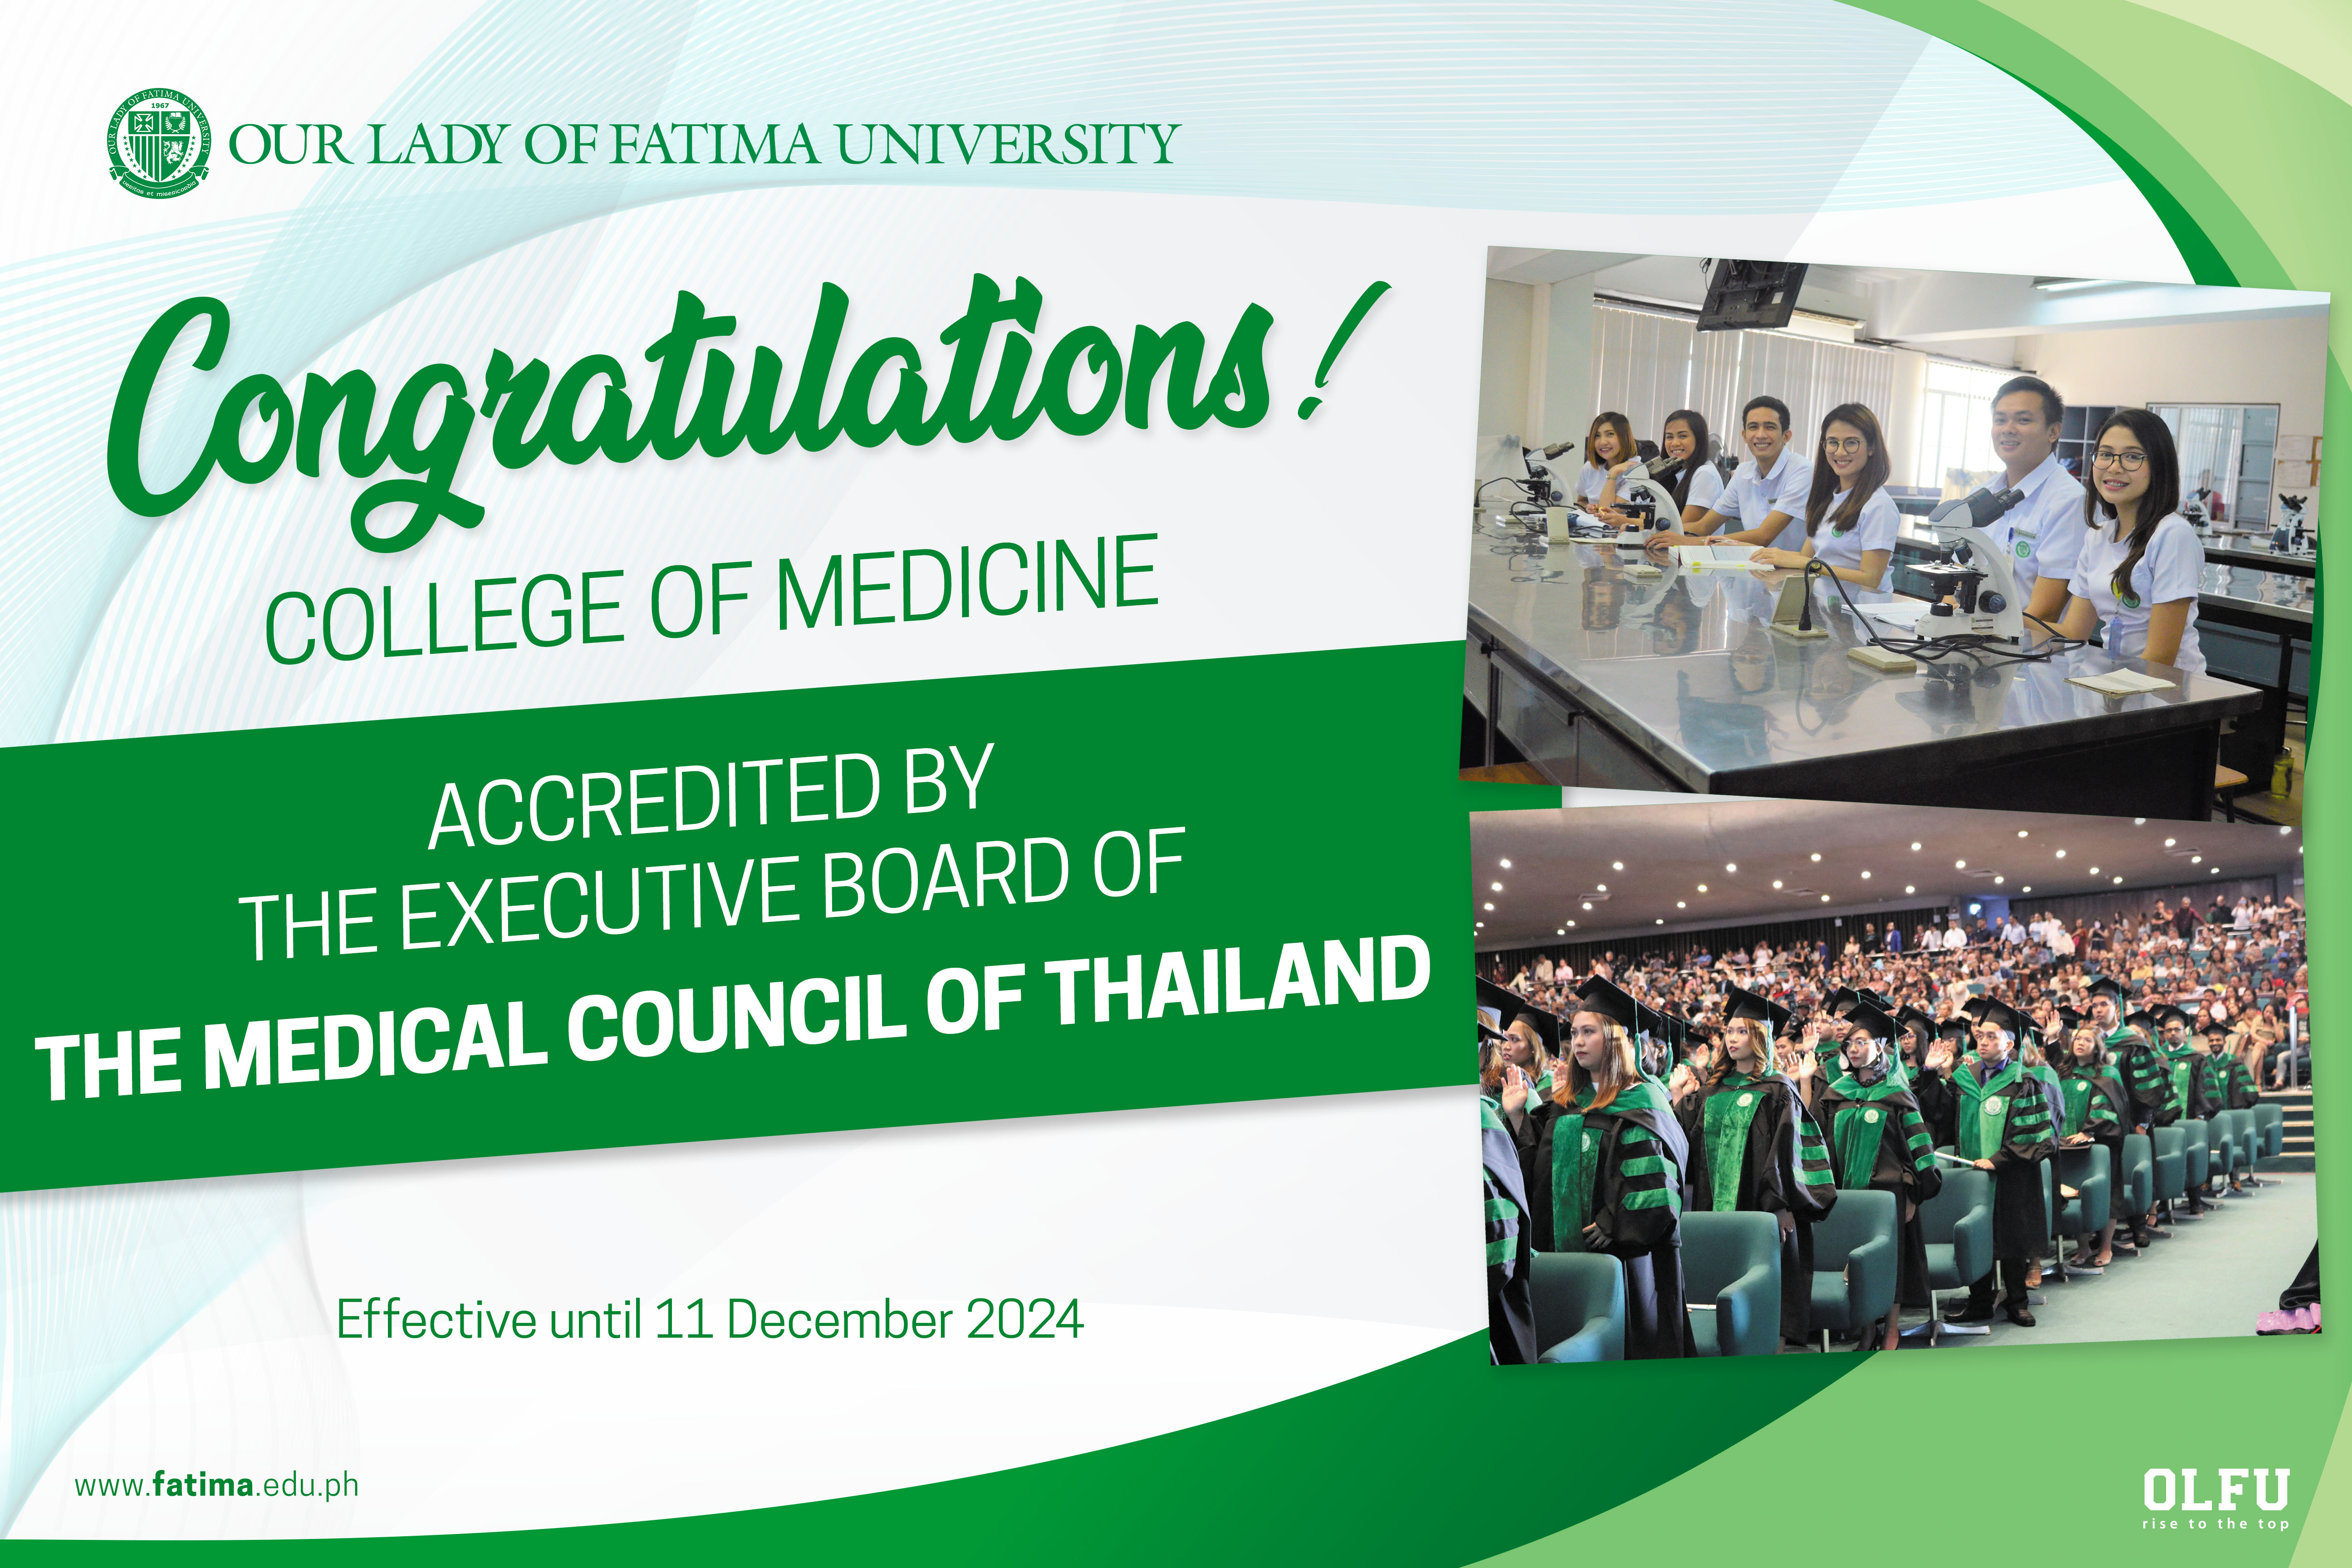 College of Medicine receives accreditation from The Medical Council of Thailand